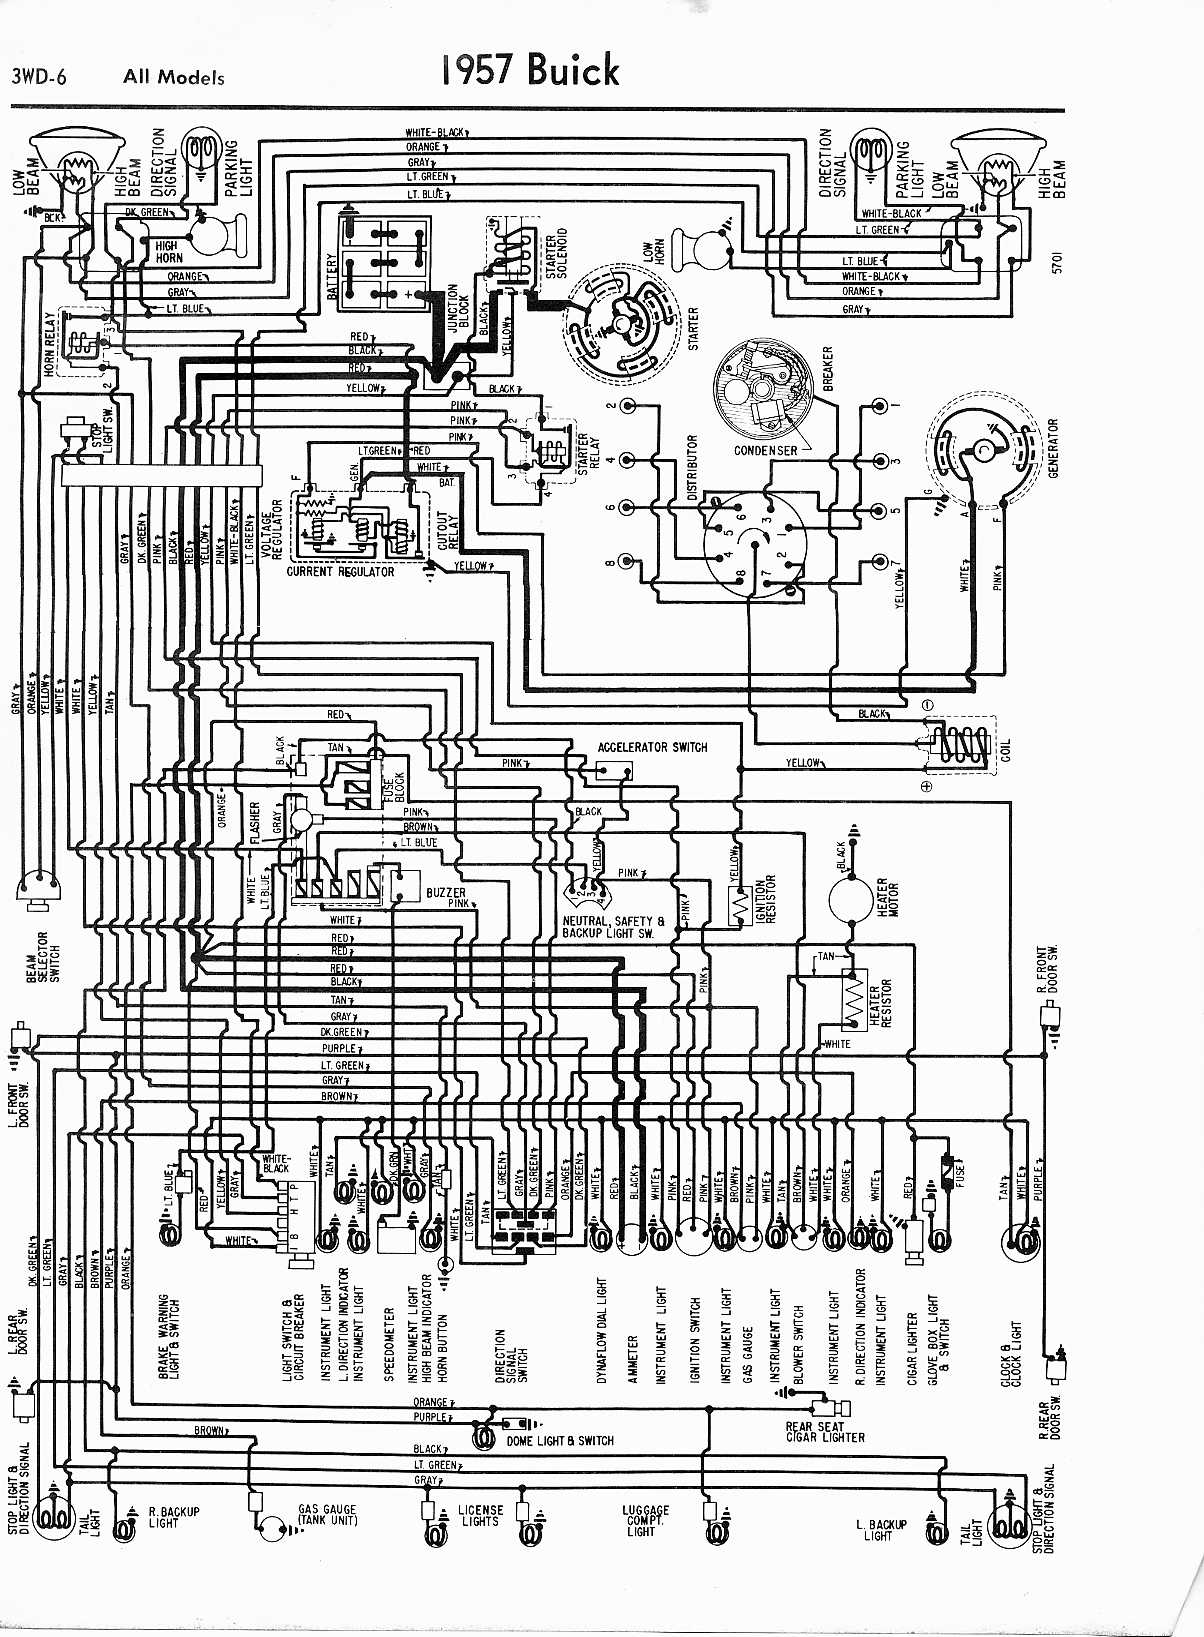 buick wiring diagrams  1957 all models